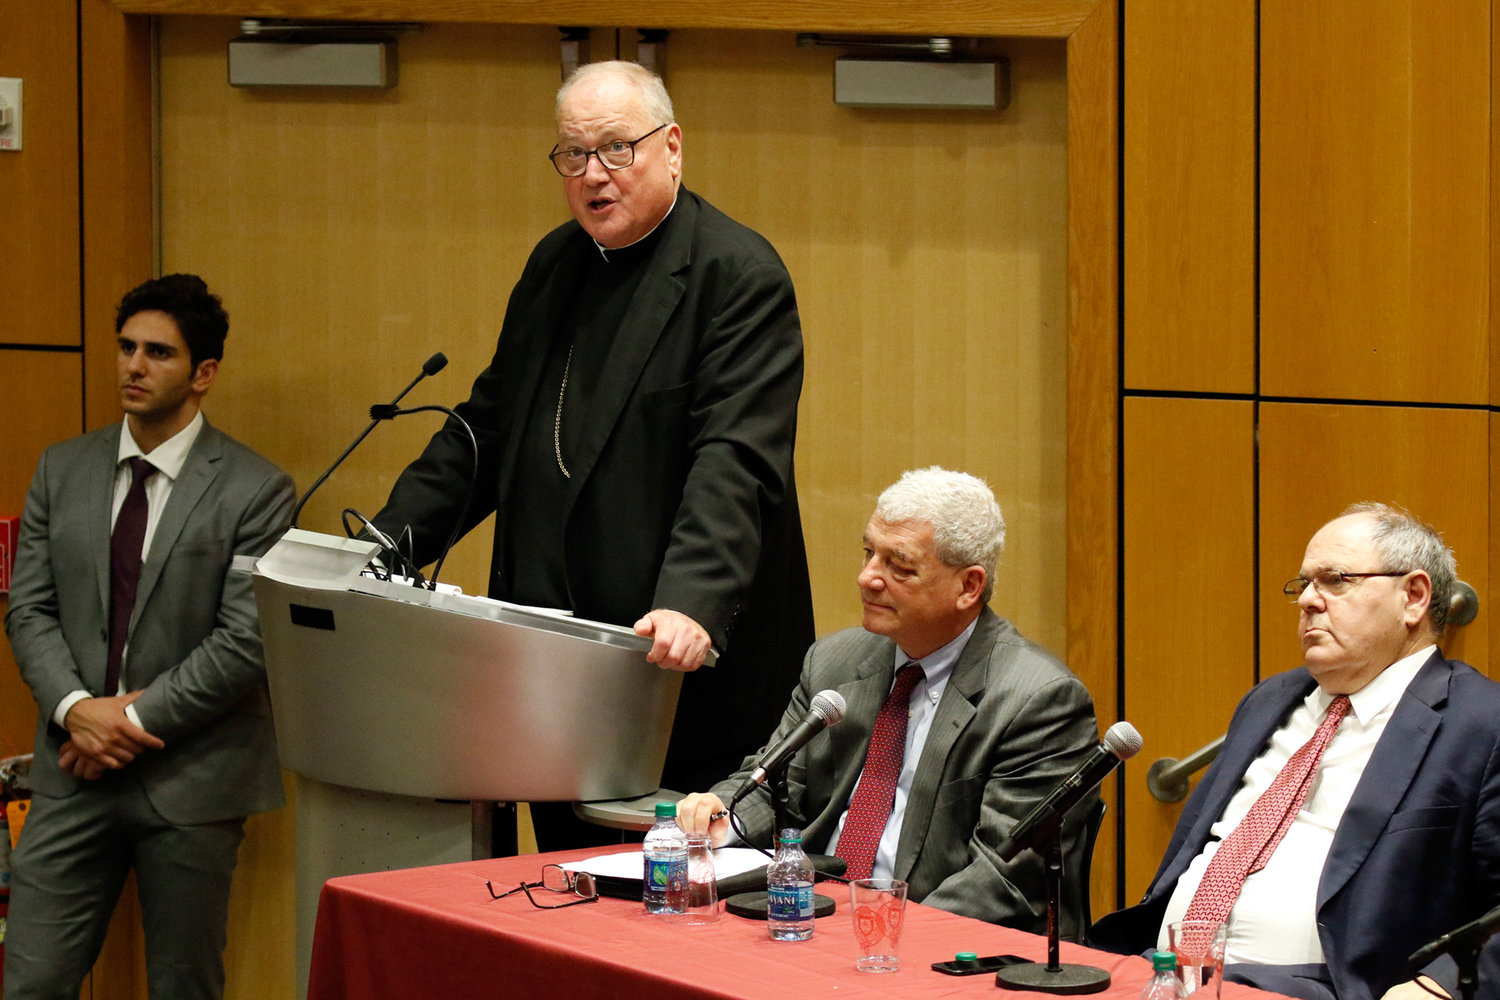 Cardinal Dolan speaks during a panel discussion on the Vatican-Israel accord June 19 at Fordham University's Lincoln Center campus in Manhattan. Next to the cardinal are Rabbi David Strauss, left, of Main Line Reform Temple Beth Elohim in Philadelphia, and Ambassador Dani Dayan, Israel's consul general in New York.